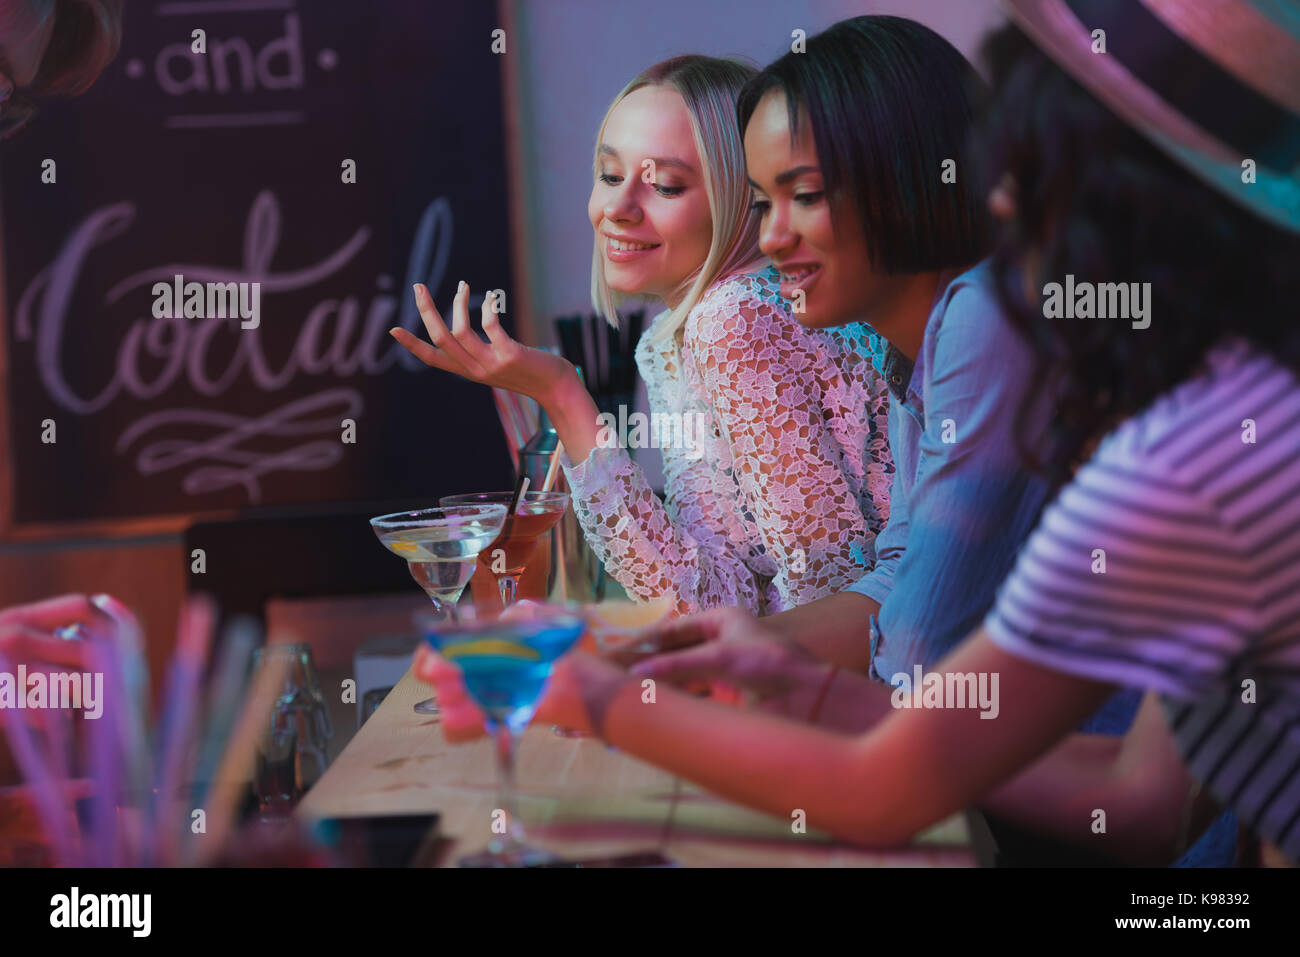 Multicultural women having party Photo Stock